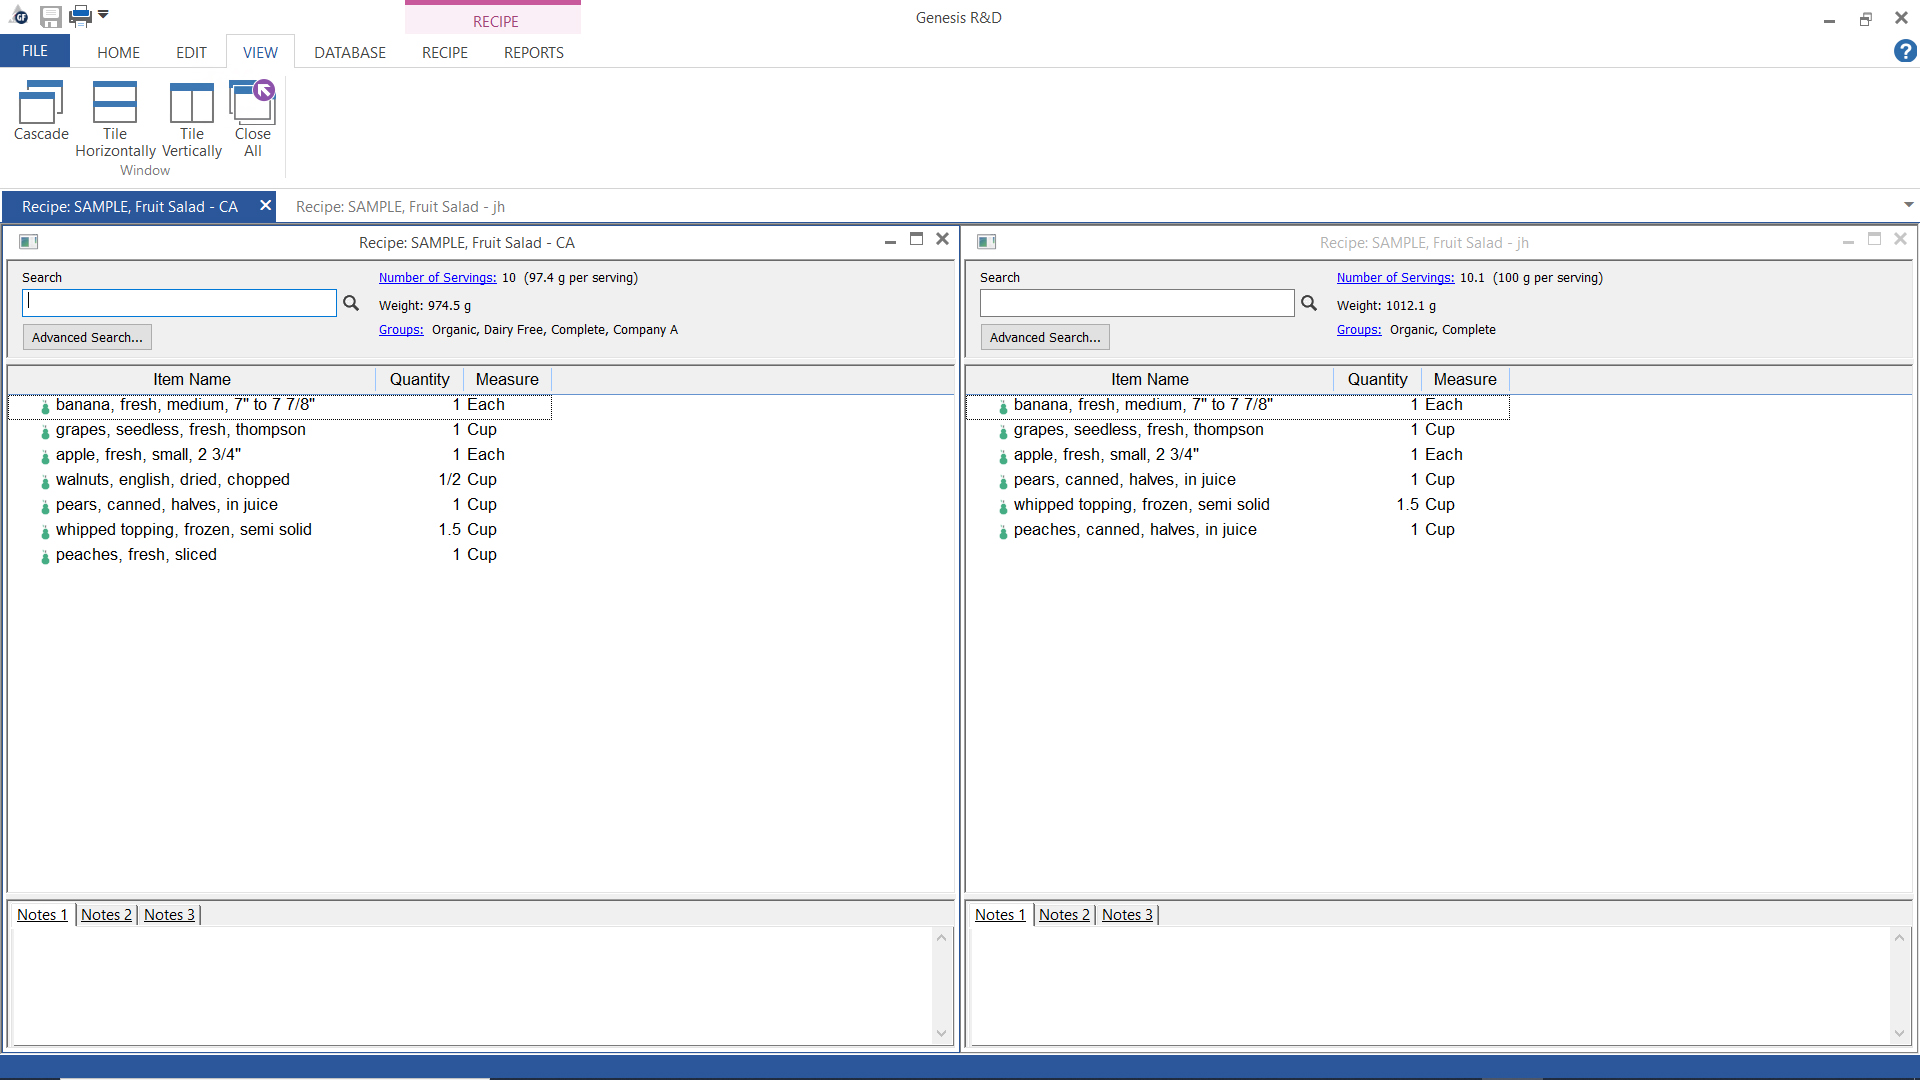 View two recipes side-by-side in Genesis R&D